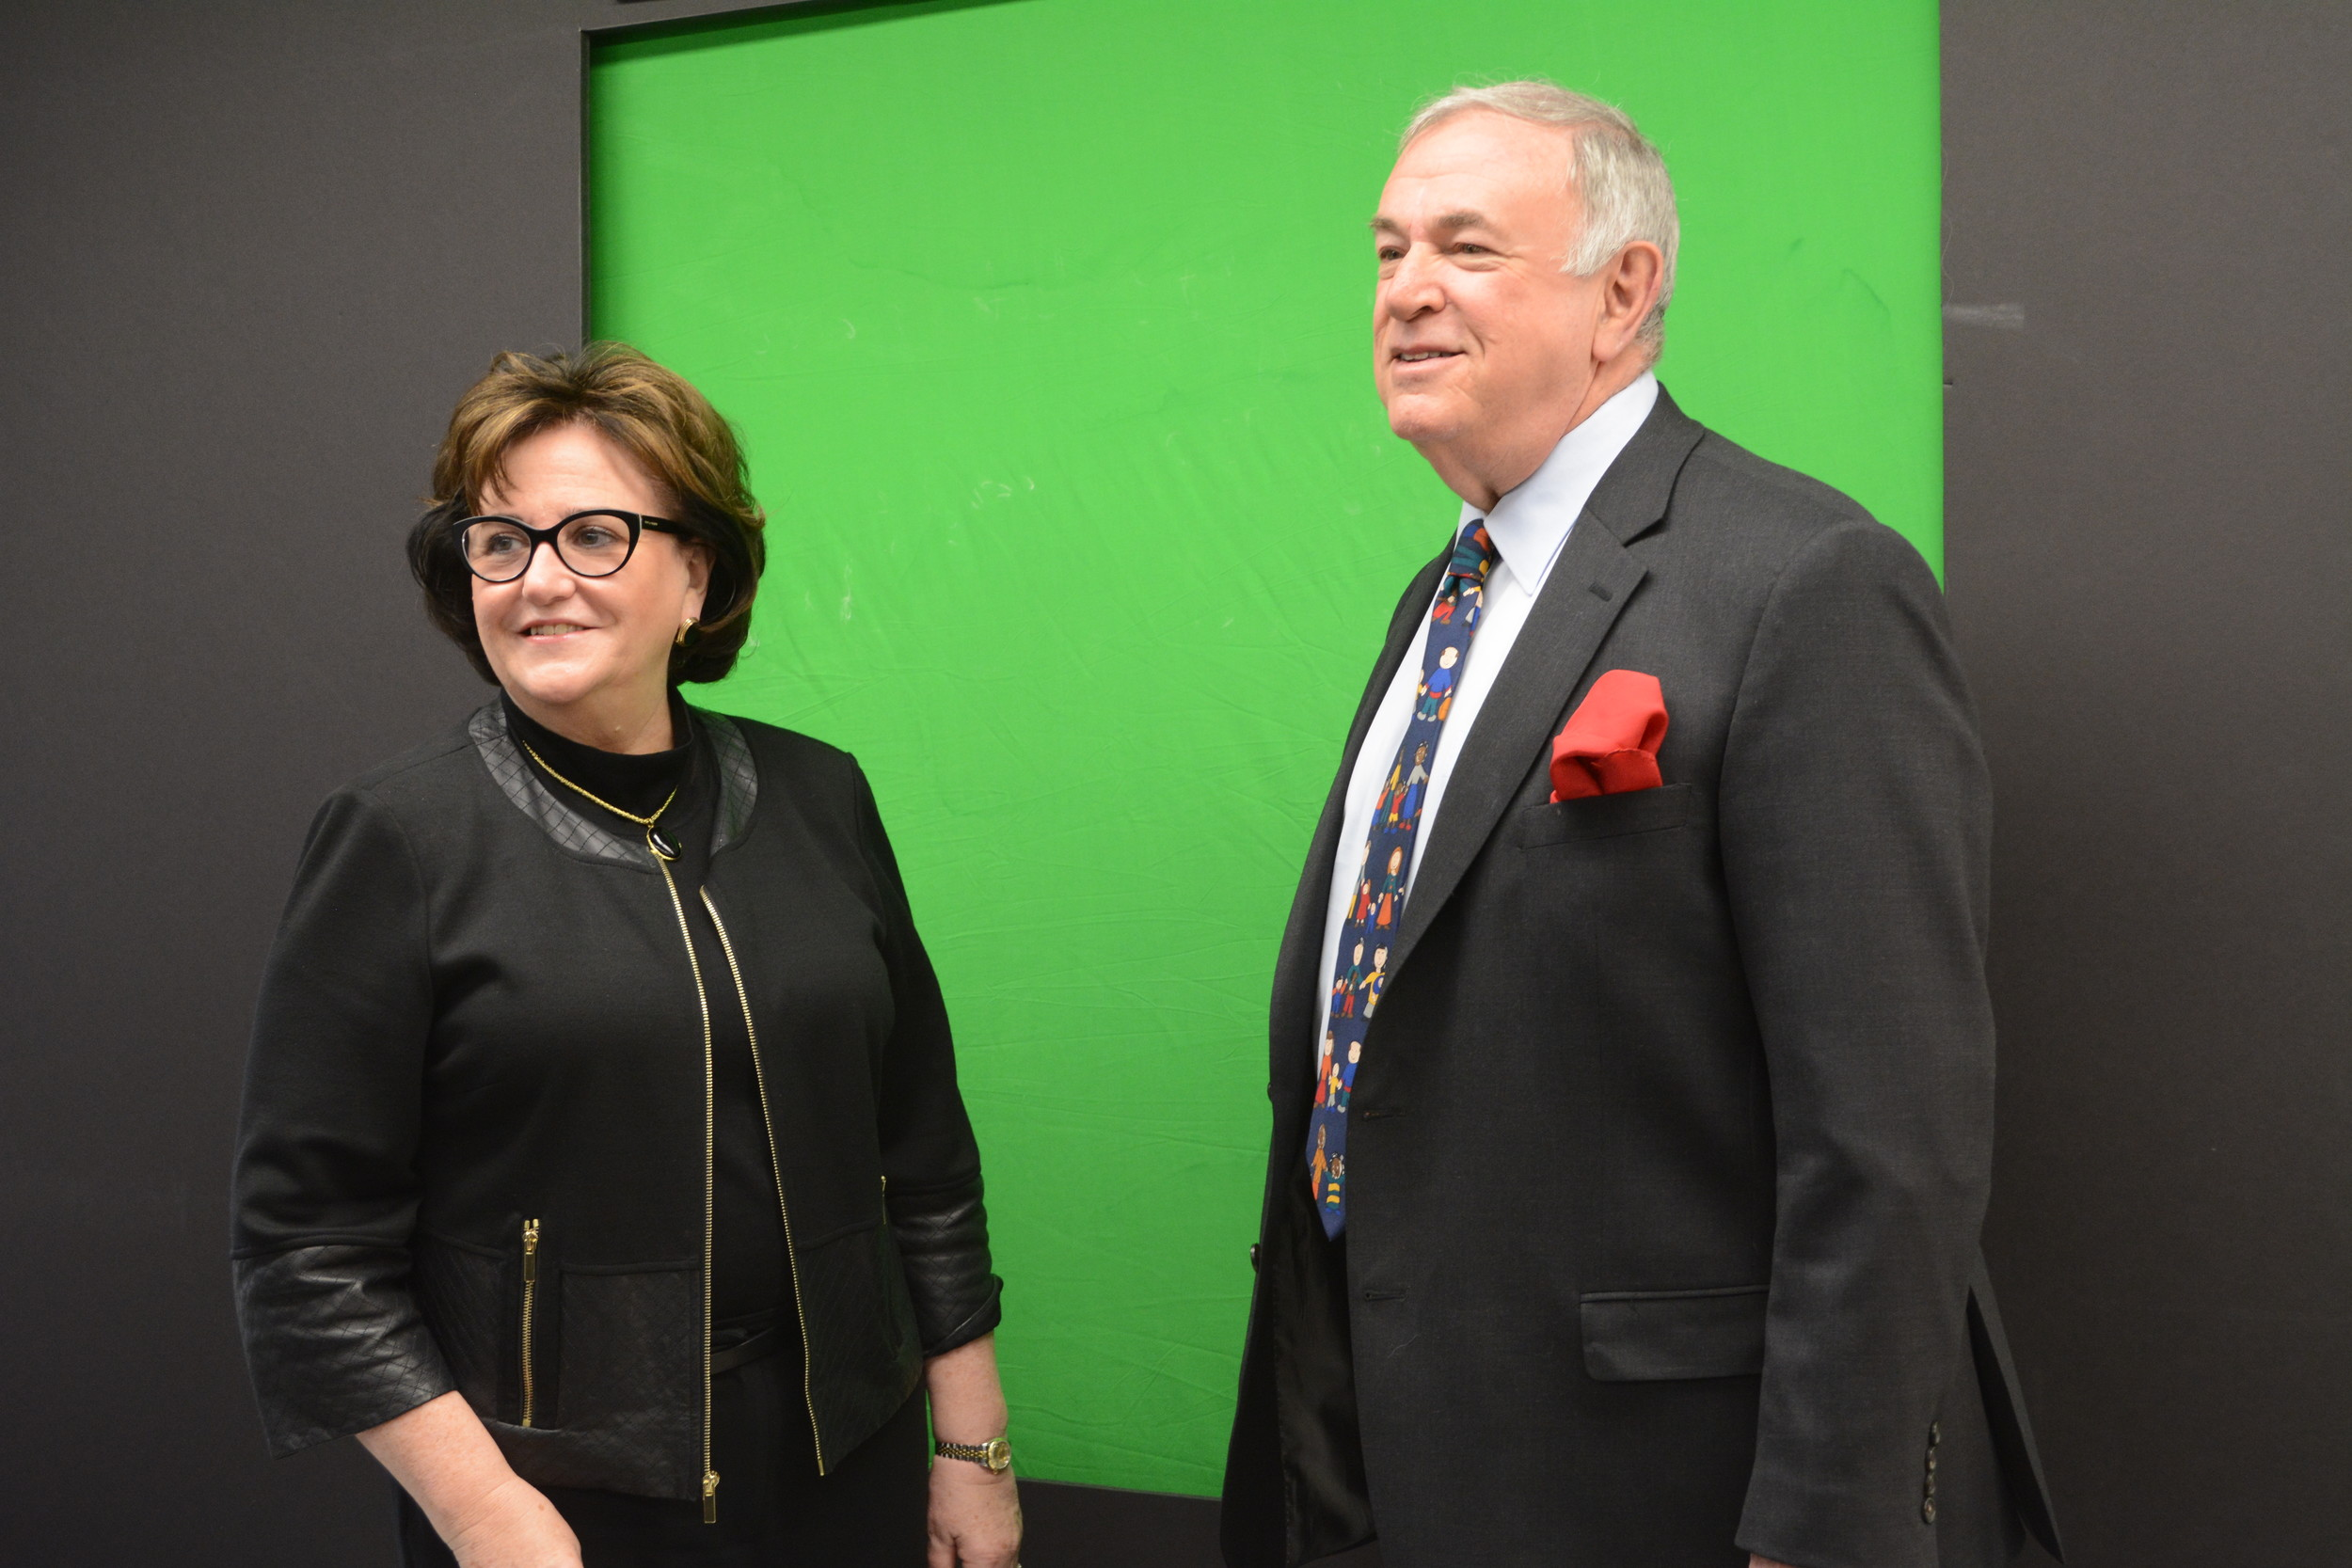 Commissioner MaryEllen Elia and Regent Roger  Tilles stood before a green screen made by students in the Global Business and Entrepreneurship Academy.